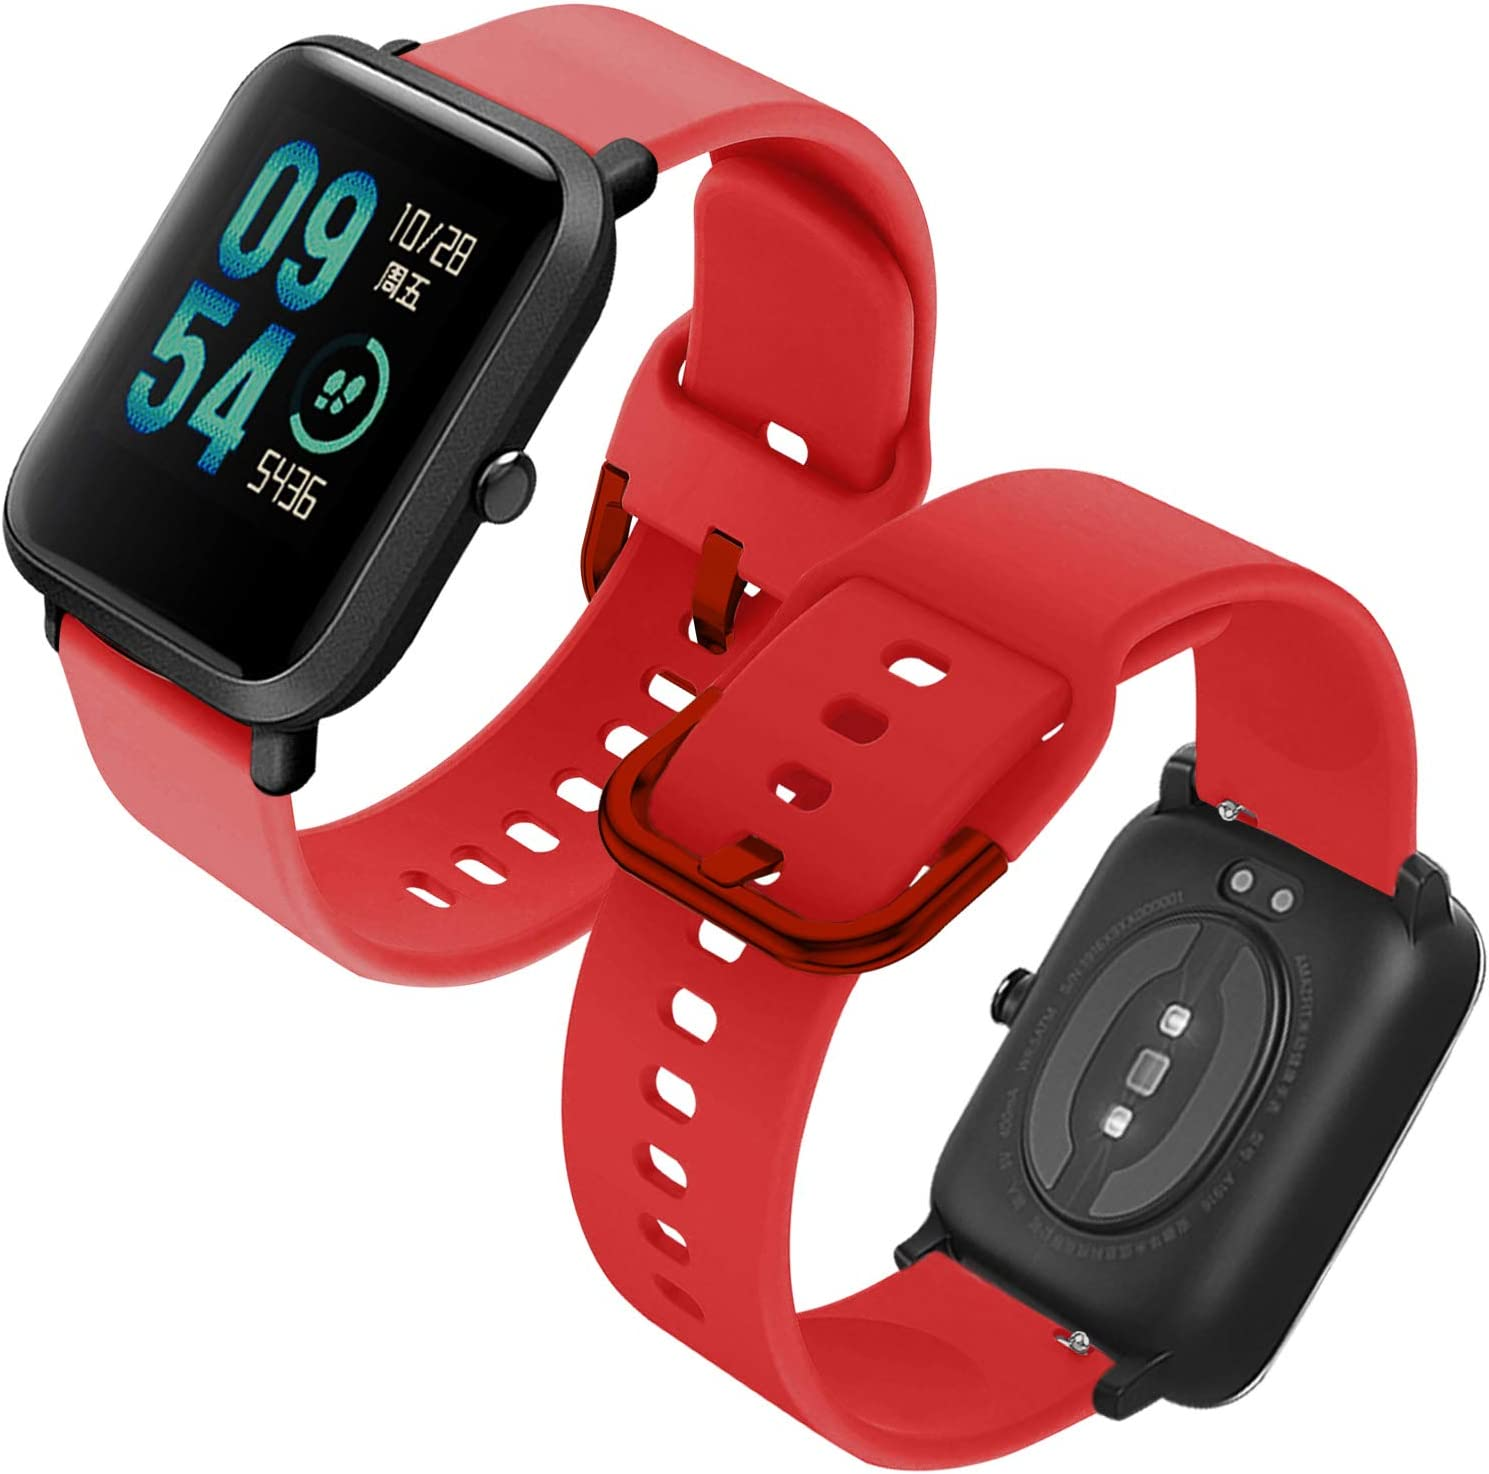 Th-some Correa para Amazfit GTS Impermeable Universal - Reemplazo de Pulsera Ajustable para Xiaomi Huami Amazfit Bip/Amazfit Bip bit Lite Youth/Amazfit GTR 42mm Watch, Sin Tracker (Rojo)